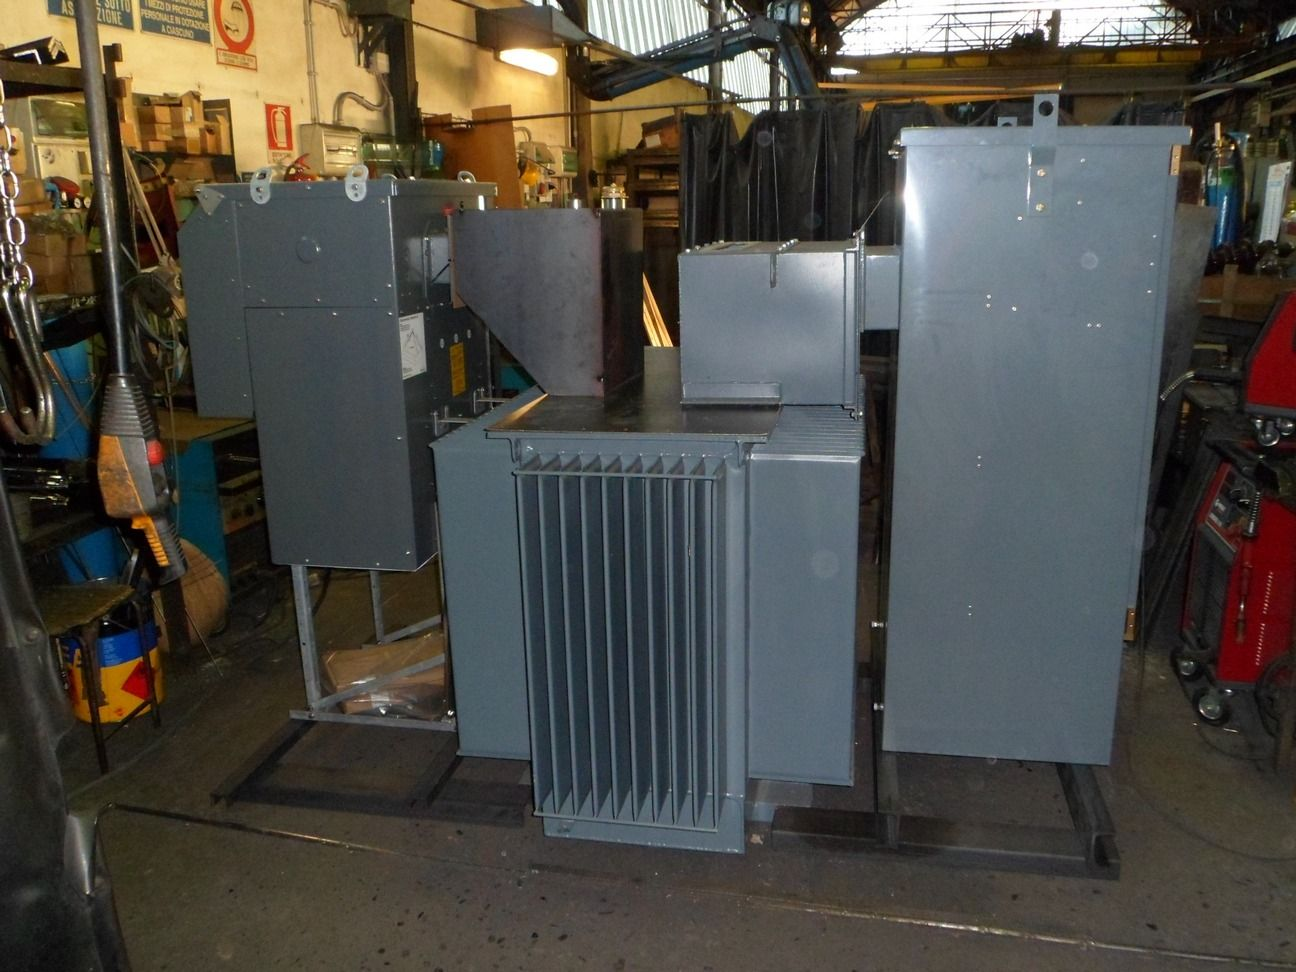 Ring Main Unit And Distribution Transformer Together In One Unit Transformers Electrical Transformers Holiday Shop